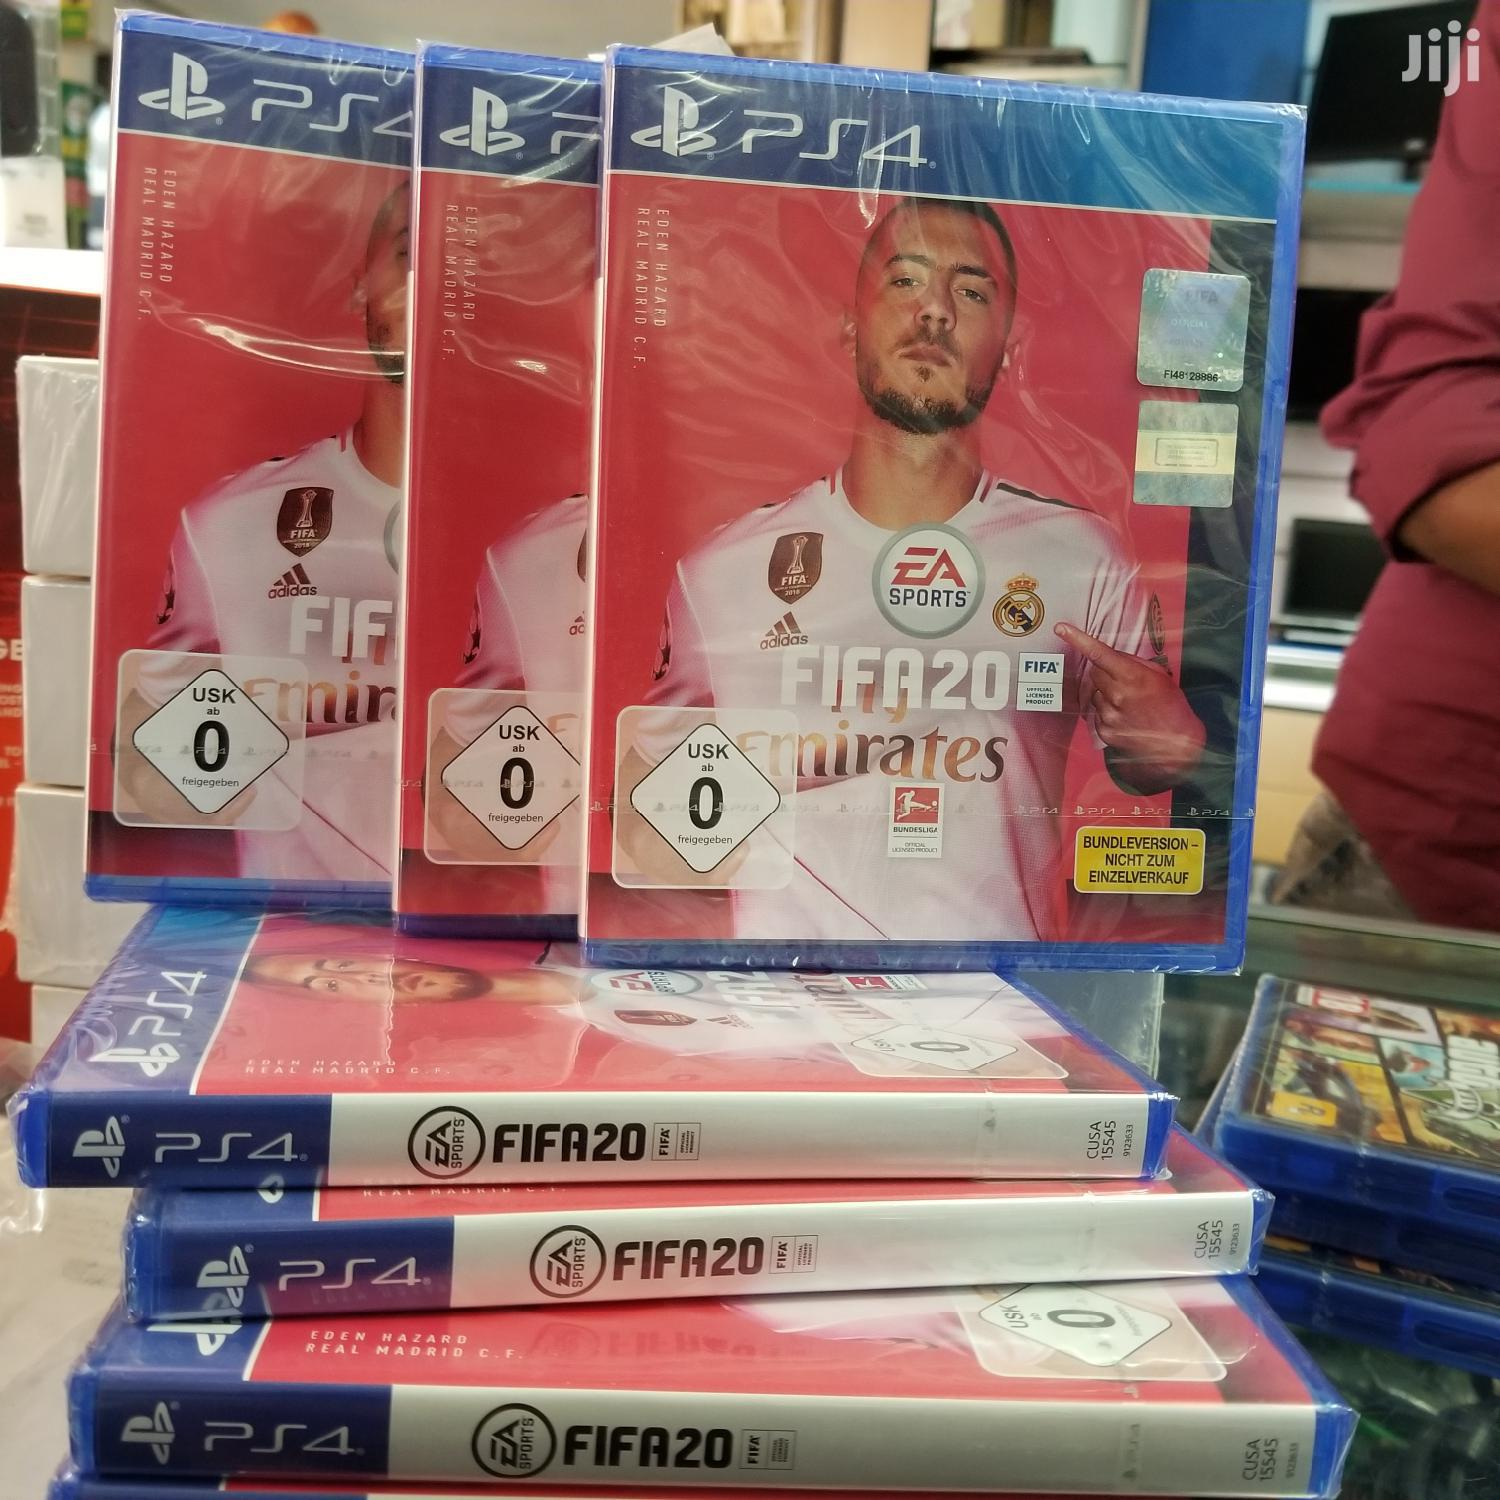 Ps4 Fifa 20 Game Discs | Video Games for sale in Kampala, Central Region, Uganda